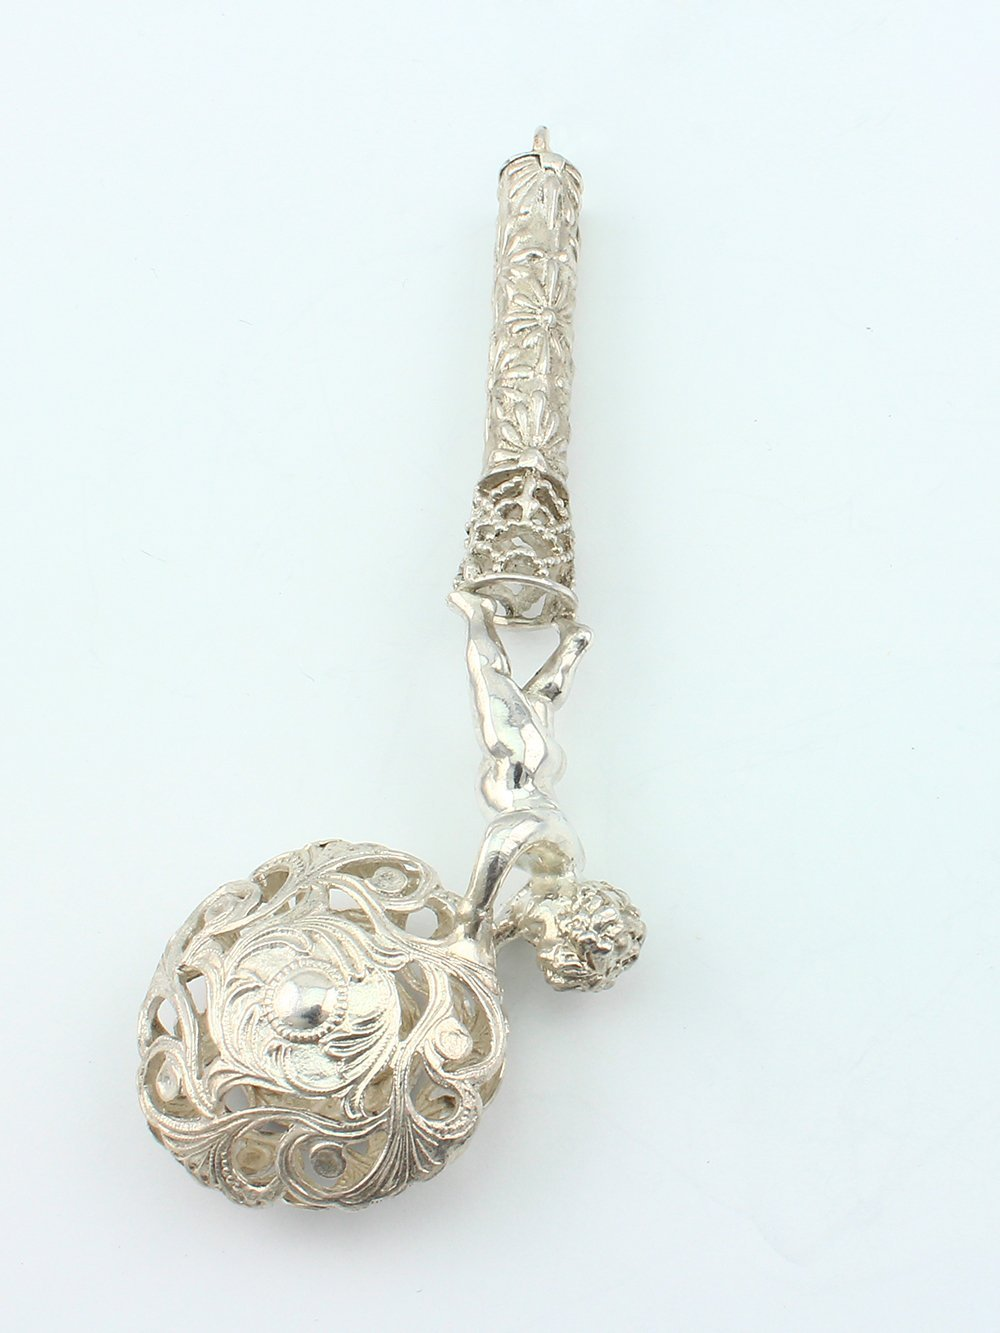 Silver Handmade Rattle A boy with a ball